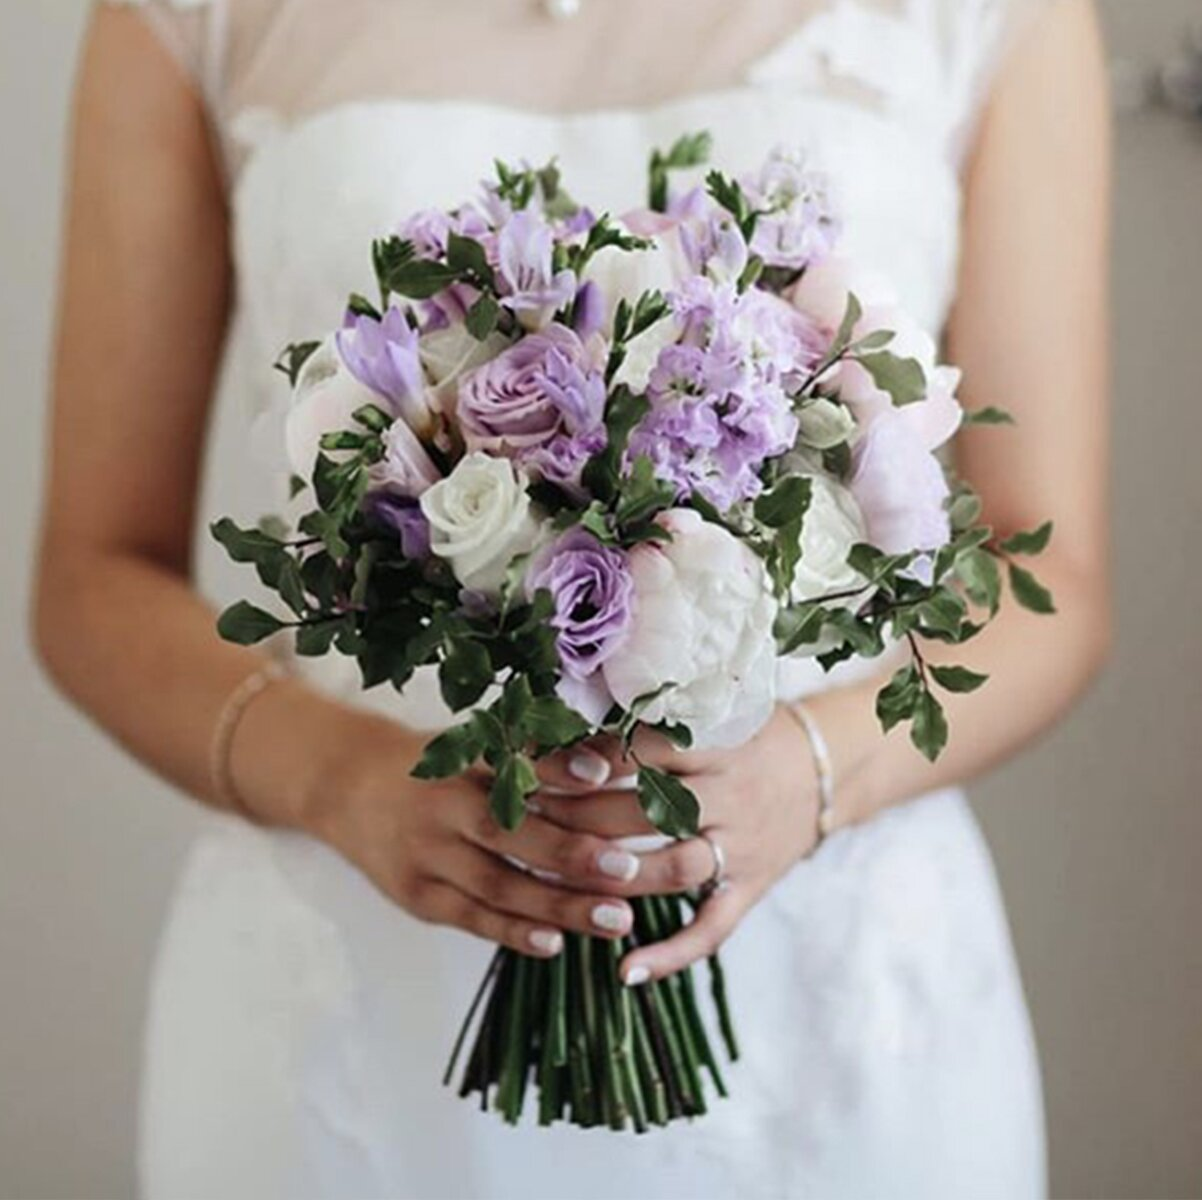 bouquet wedding flowers sydney pacakges prices affordable